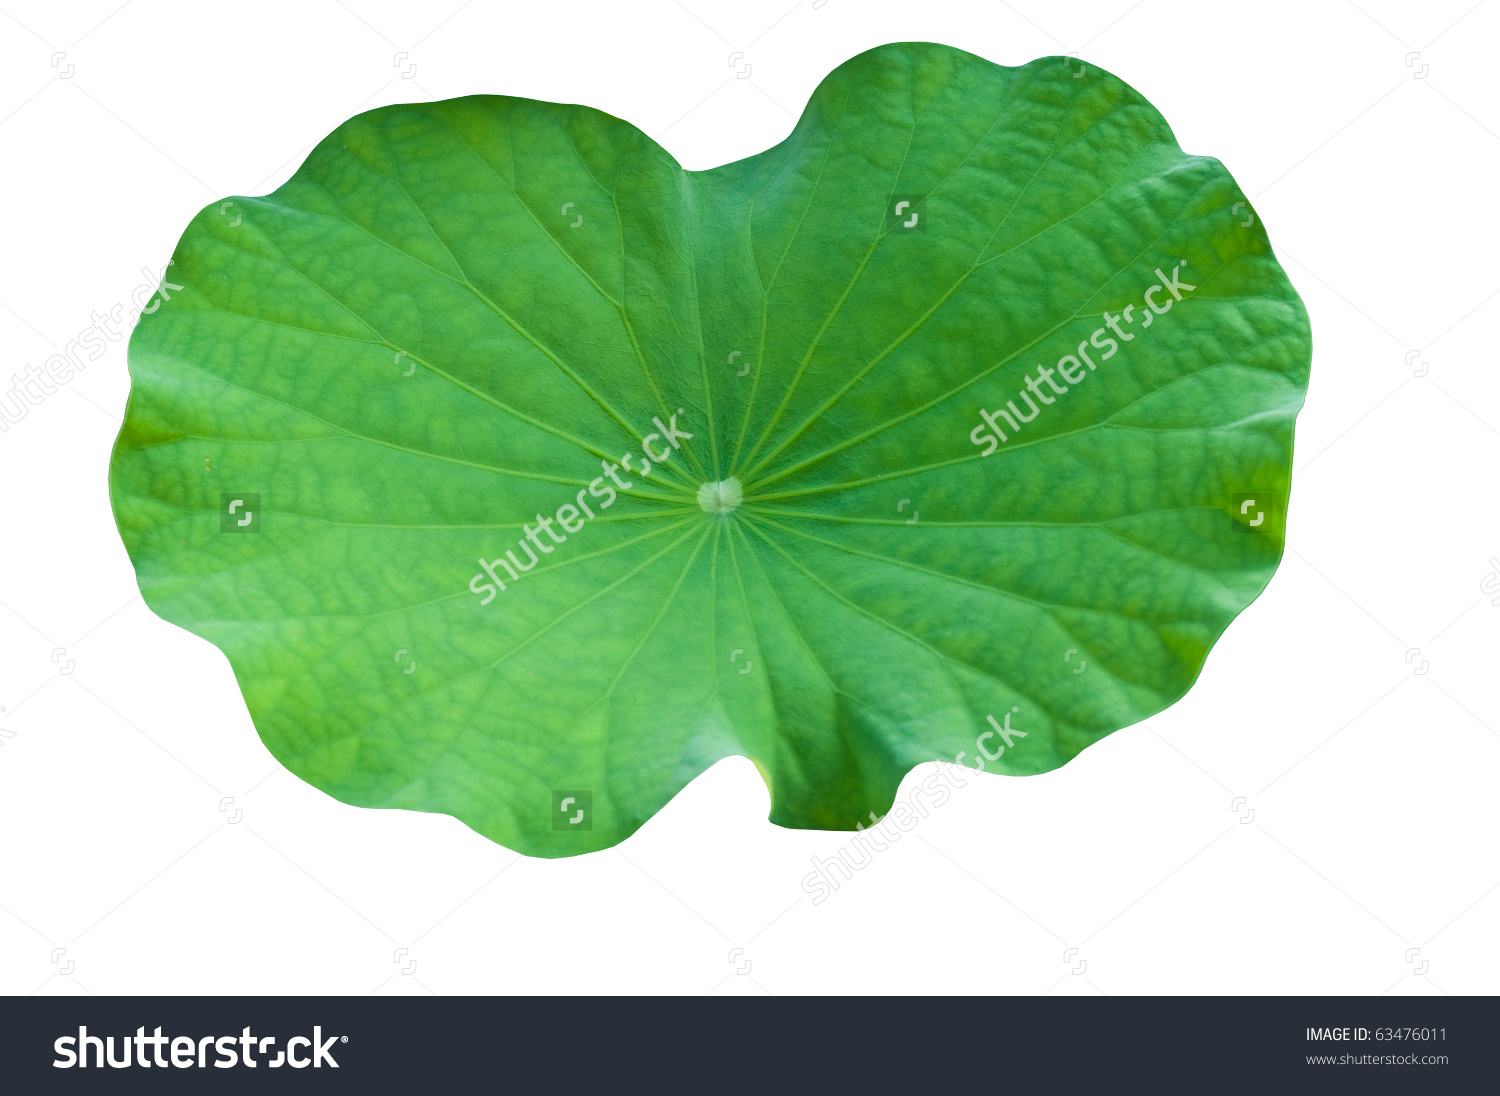 Lotus Leaf Stock Photo 63476011.